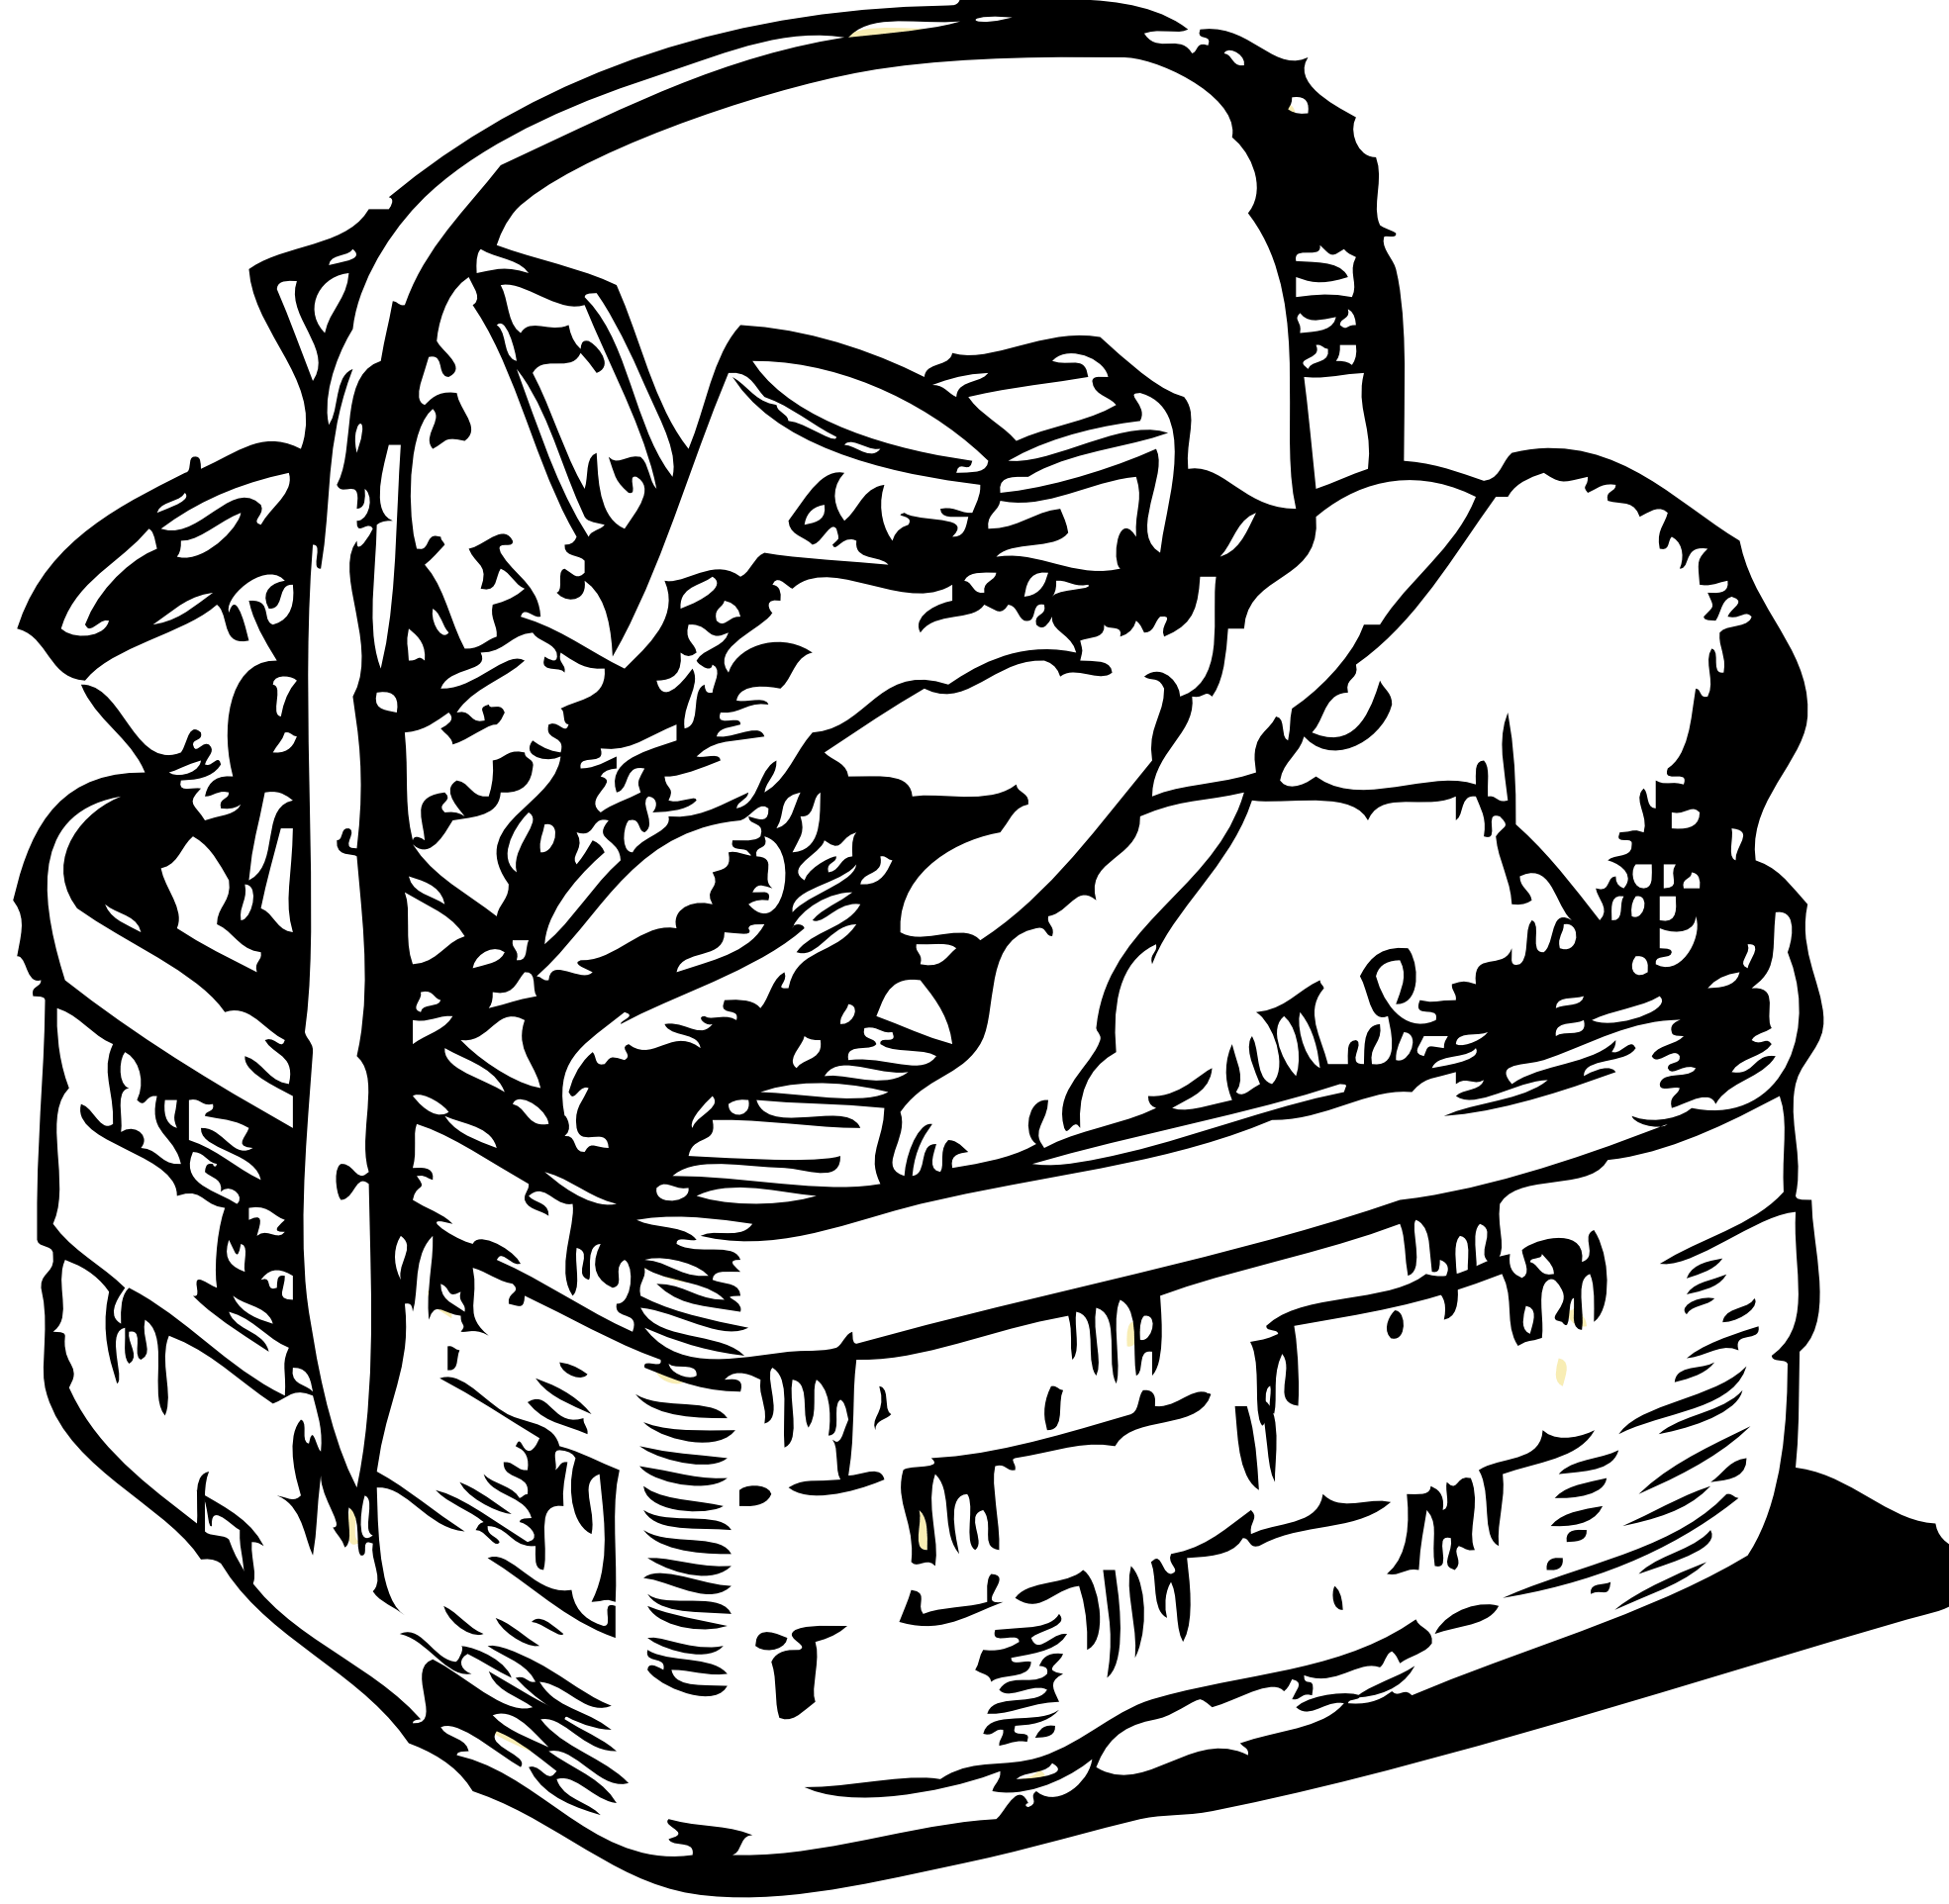 laundry drawing bag